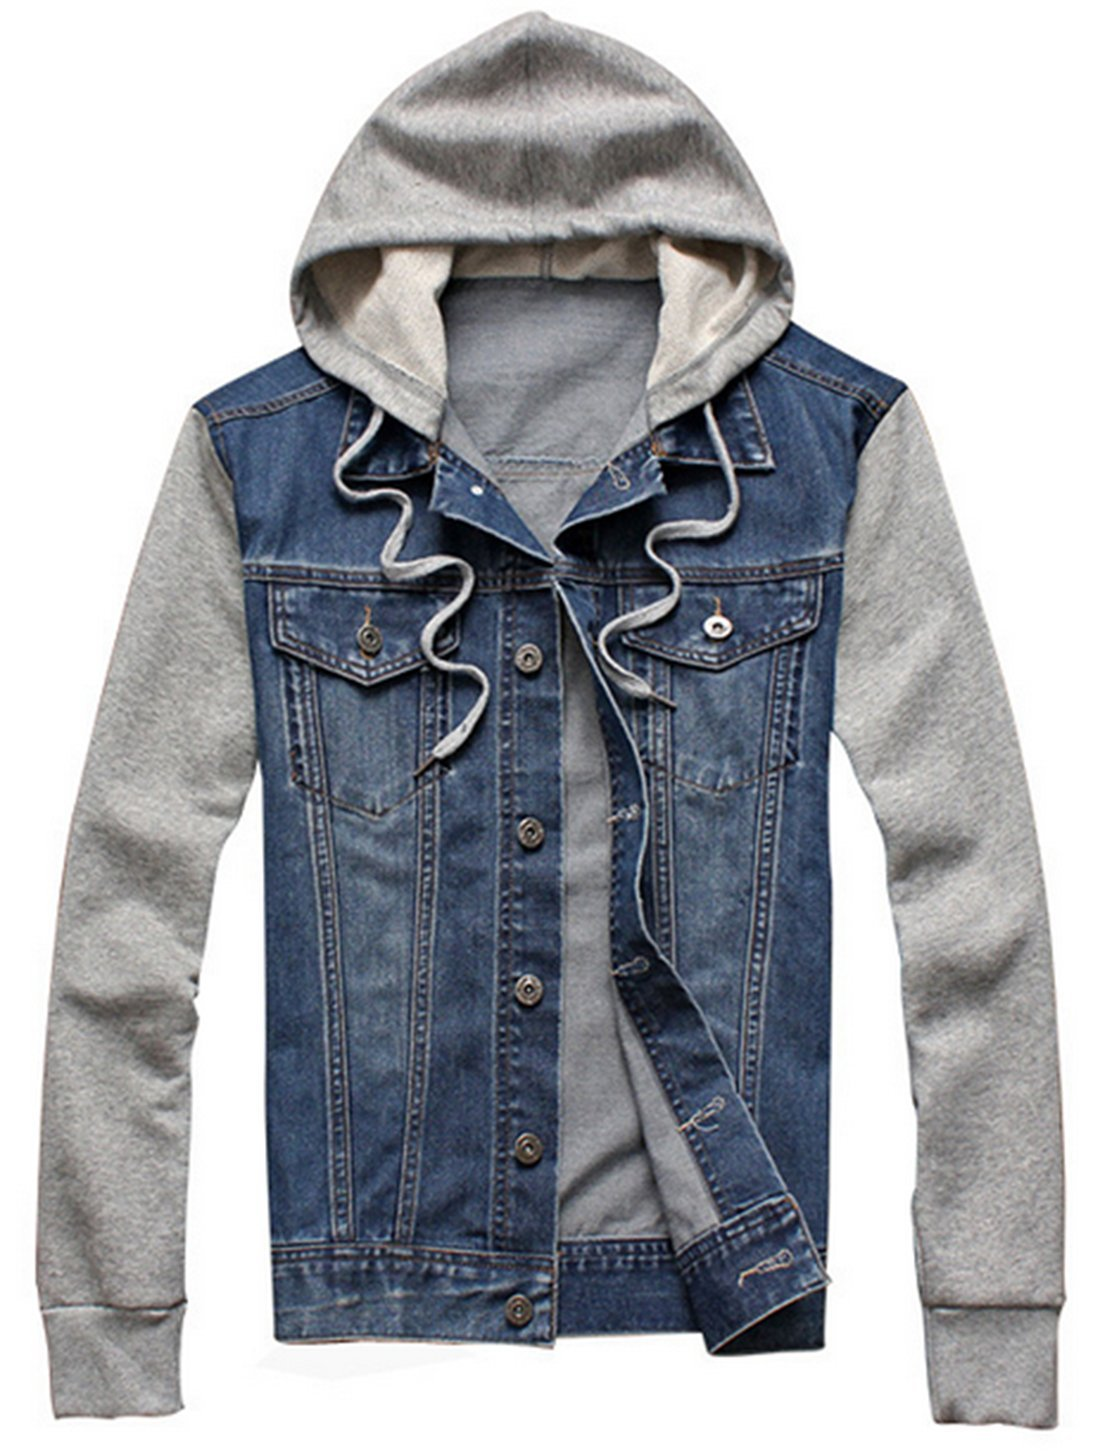 XueYin Men's Denim Hoodie Jacket with Hat Slim Fit Casual Wear(Blue,L Size) by XueYin